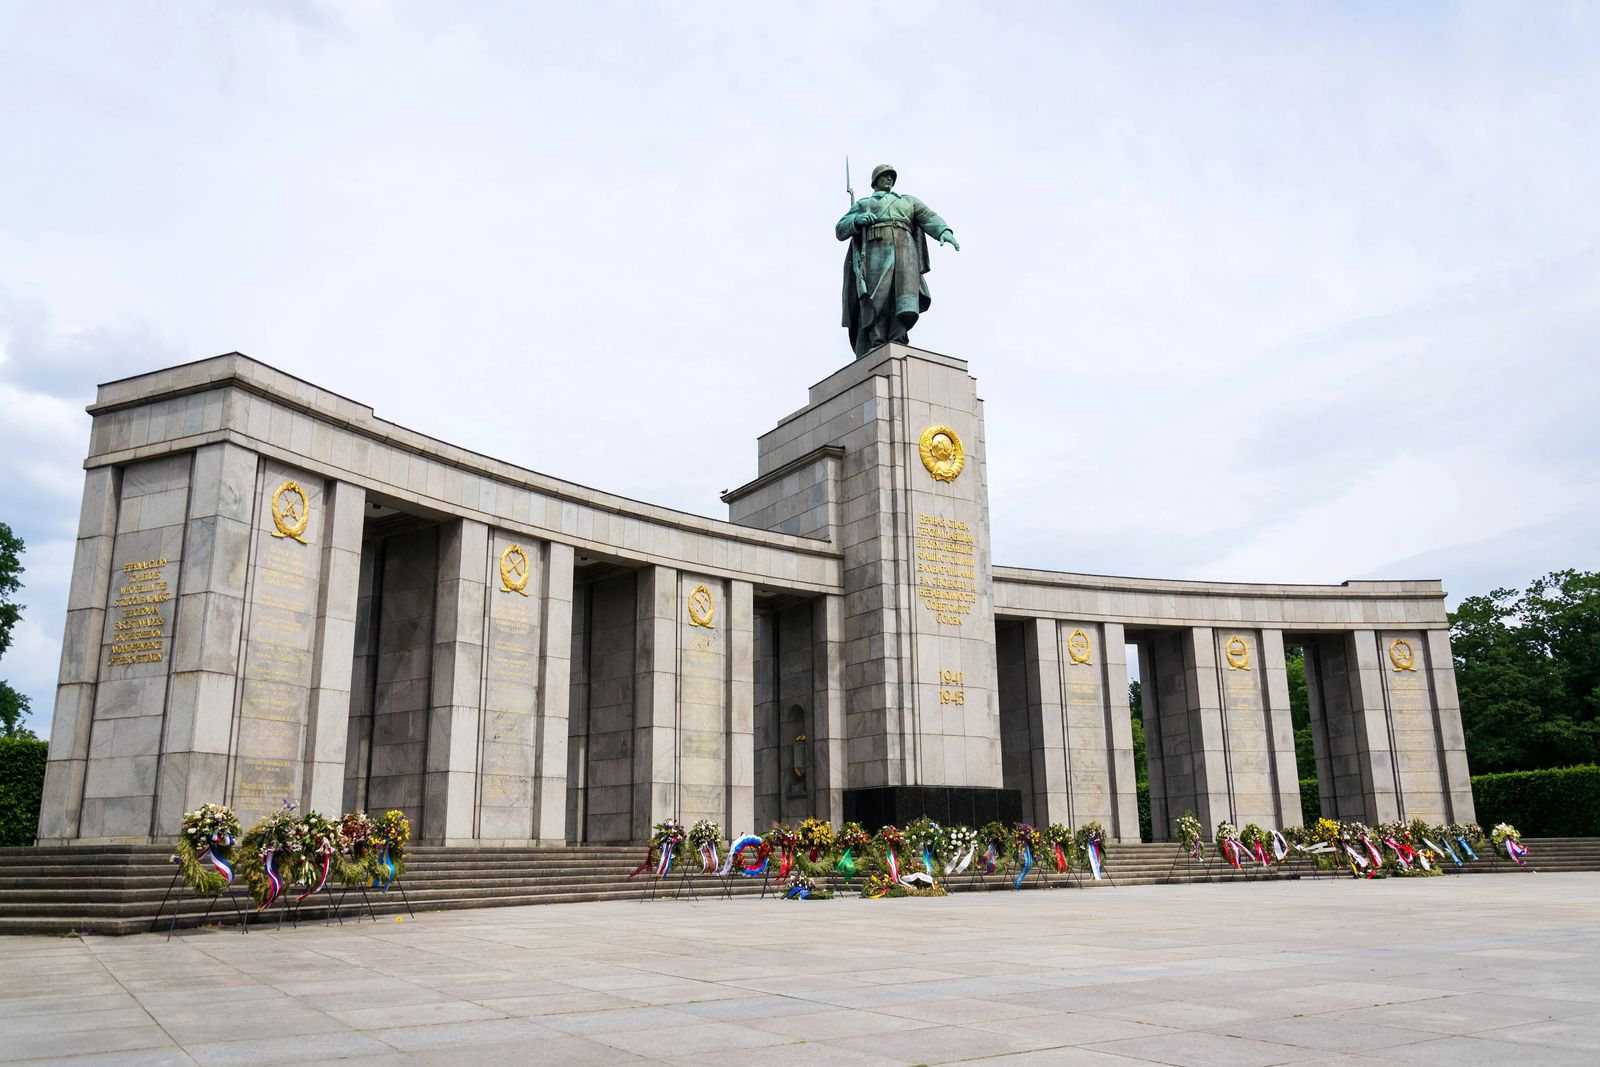 backpacking Eastern Europe 12 hours in berlin and what to see. Picture of grey soviet memorial with wreaths lain at the base